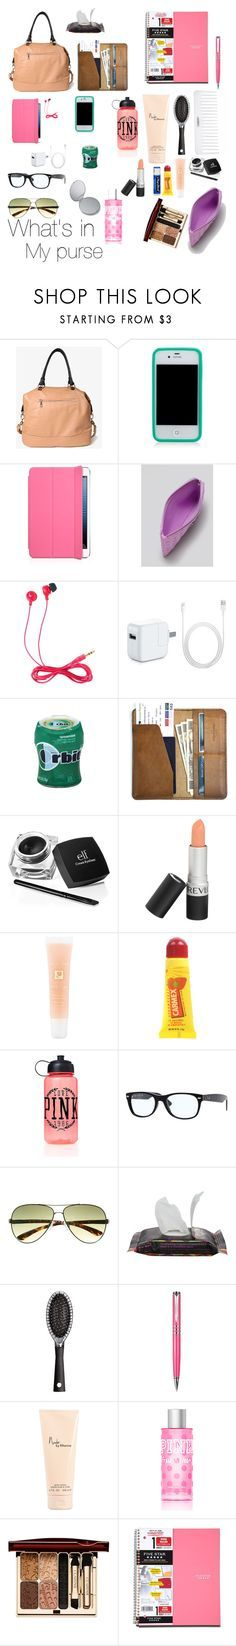 """""""What's in my purse?"""" by justbreana ❤ liked on Polyvore featuring Forever 21, Tory Burch, Marc by Marc Jacobs, Jack Wills, CO, Revlon, Lancôme, Carmex, Chapstick and Victoria's Secret PINK"""